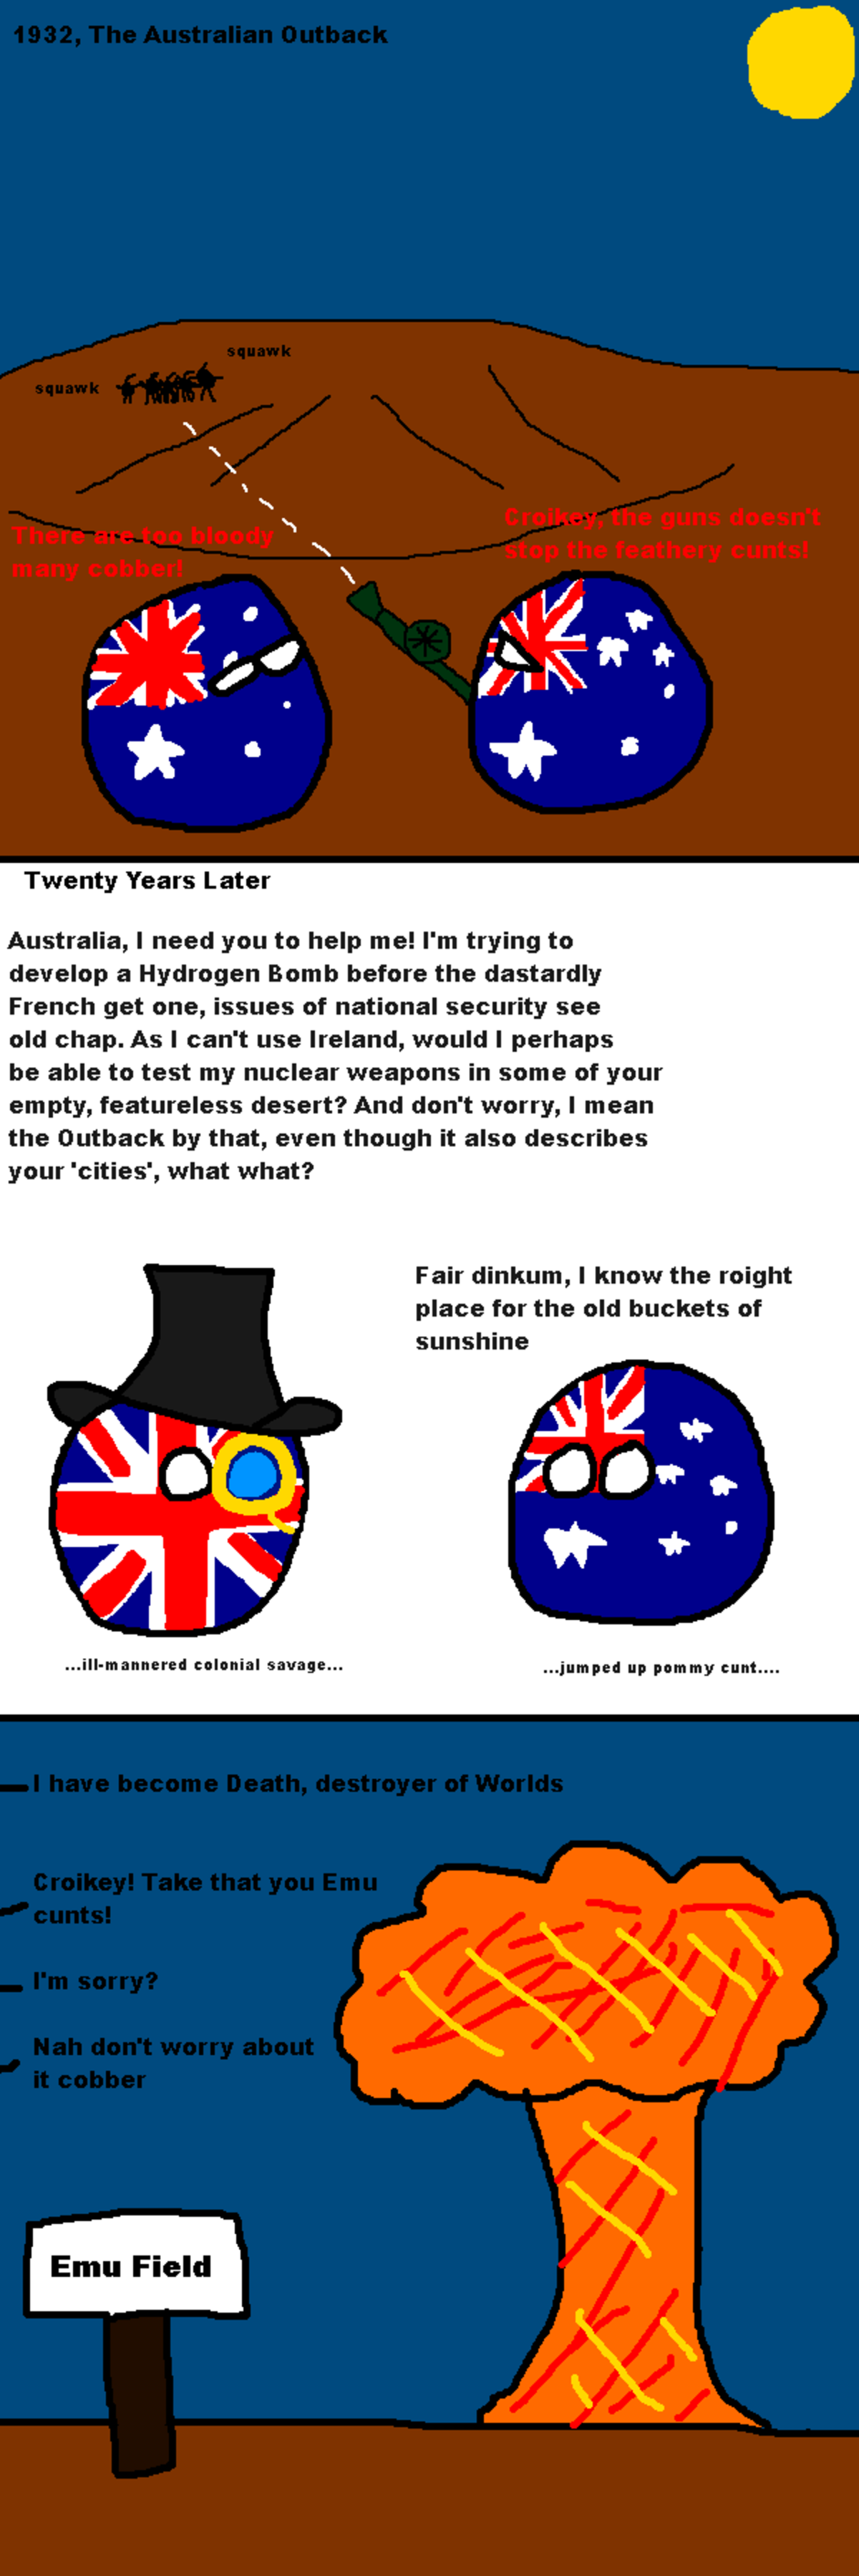 How Australia won the Emu Wars. . Twenty Years Later Australia, I need you to help me! I' m trying to develop a Hydrogen Bomb before the dastardly French get on